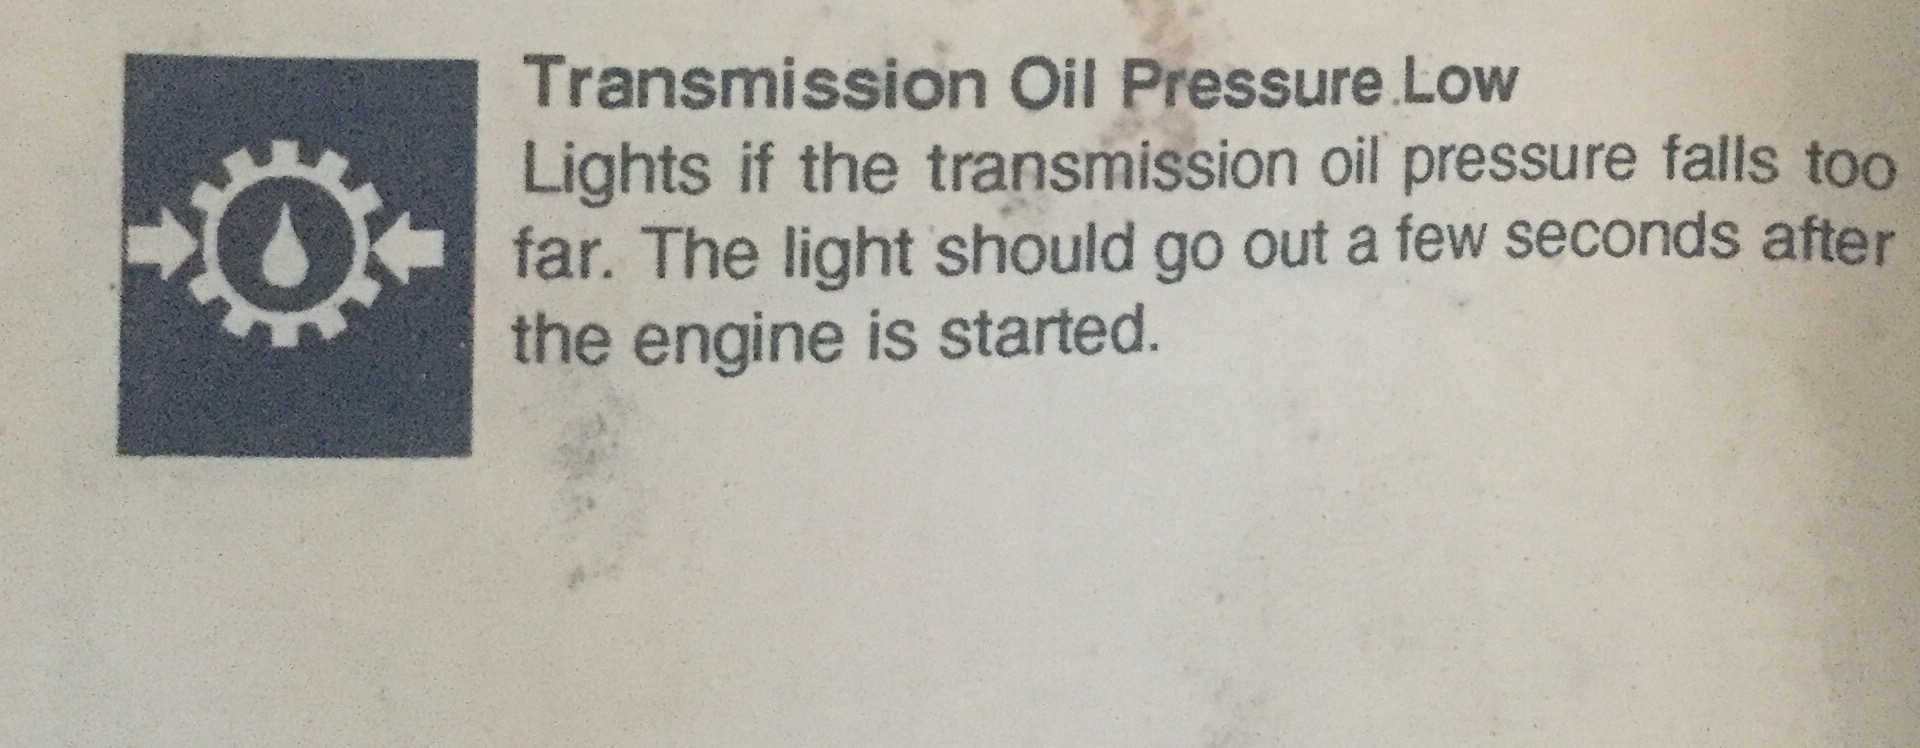 Jcb transmission oil pressure low | The Farming Forum